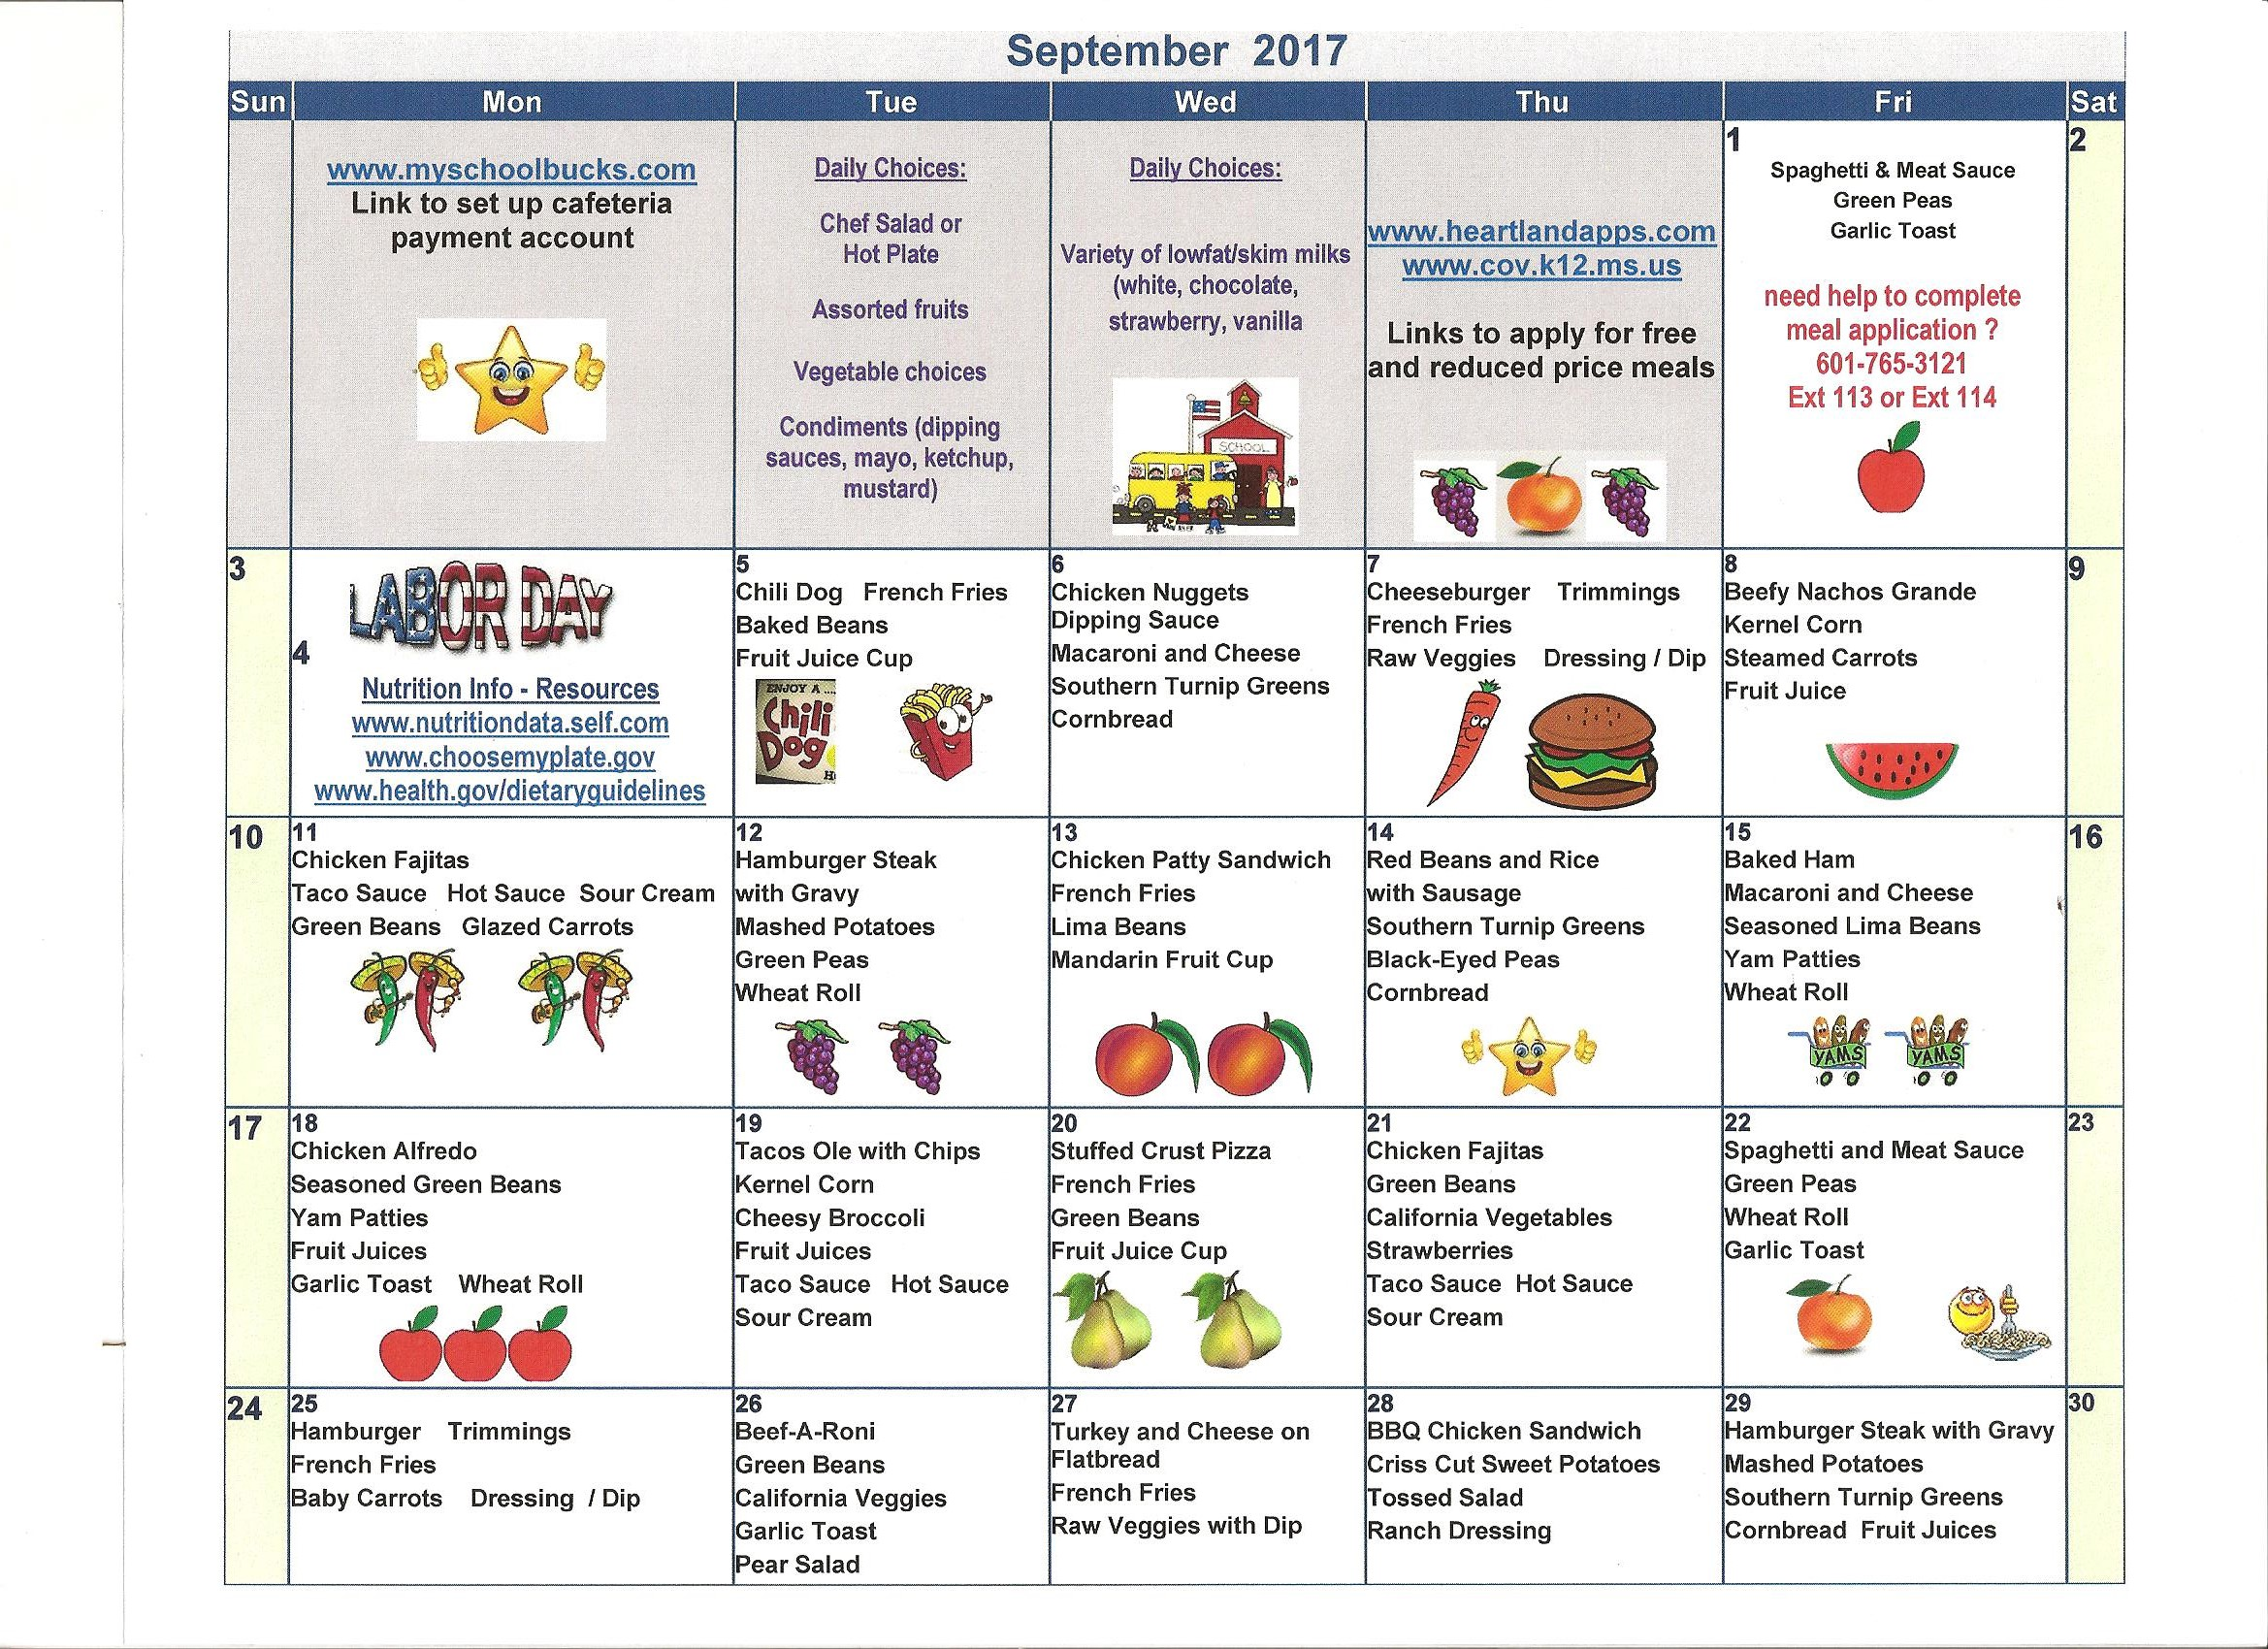 September 2017 Menus